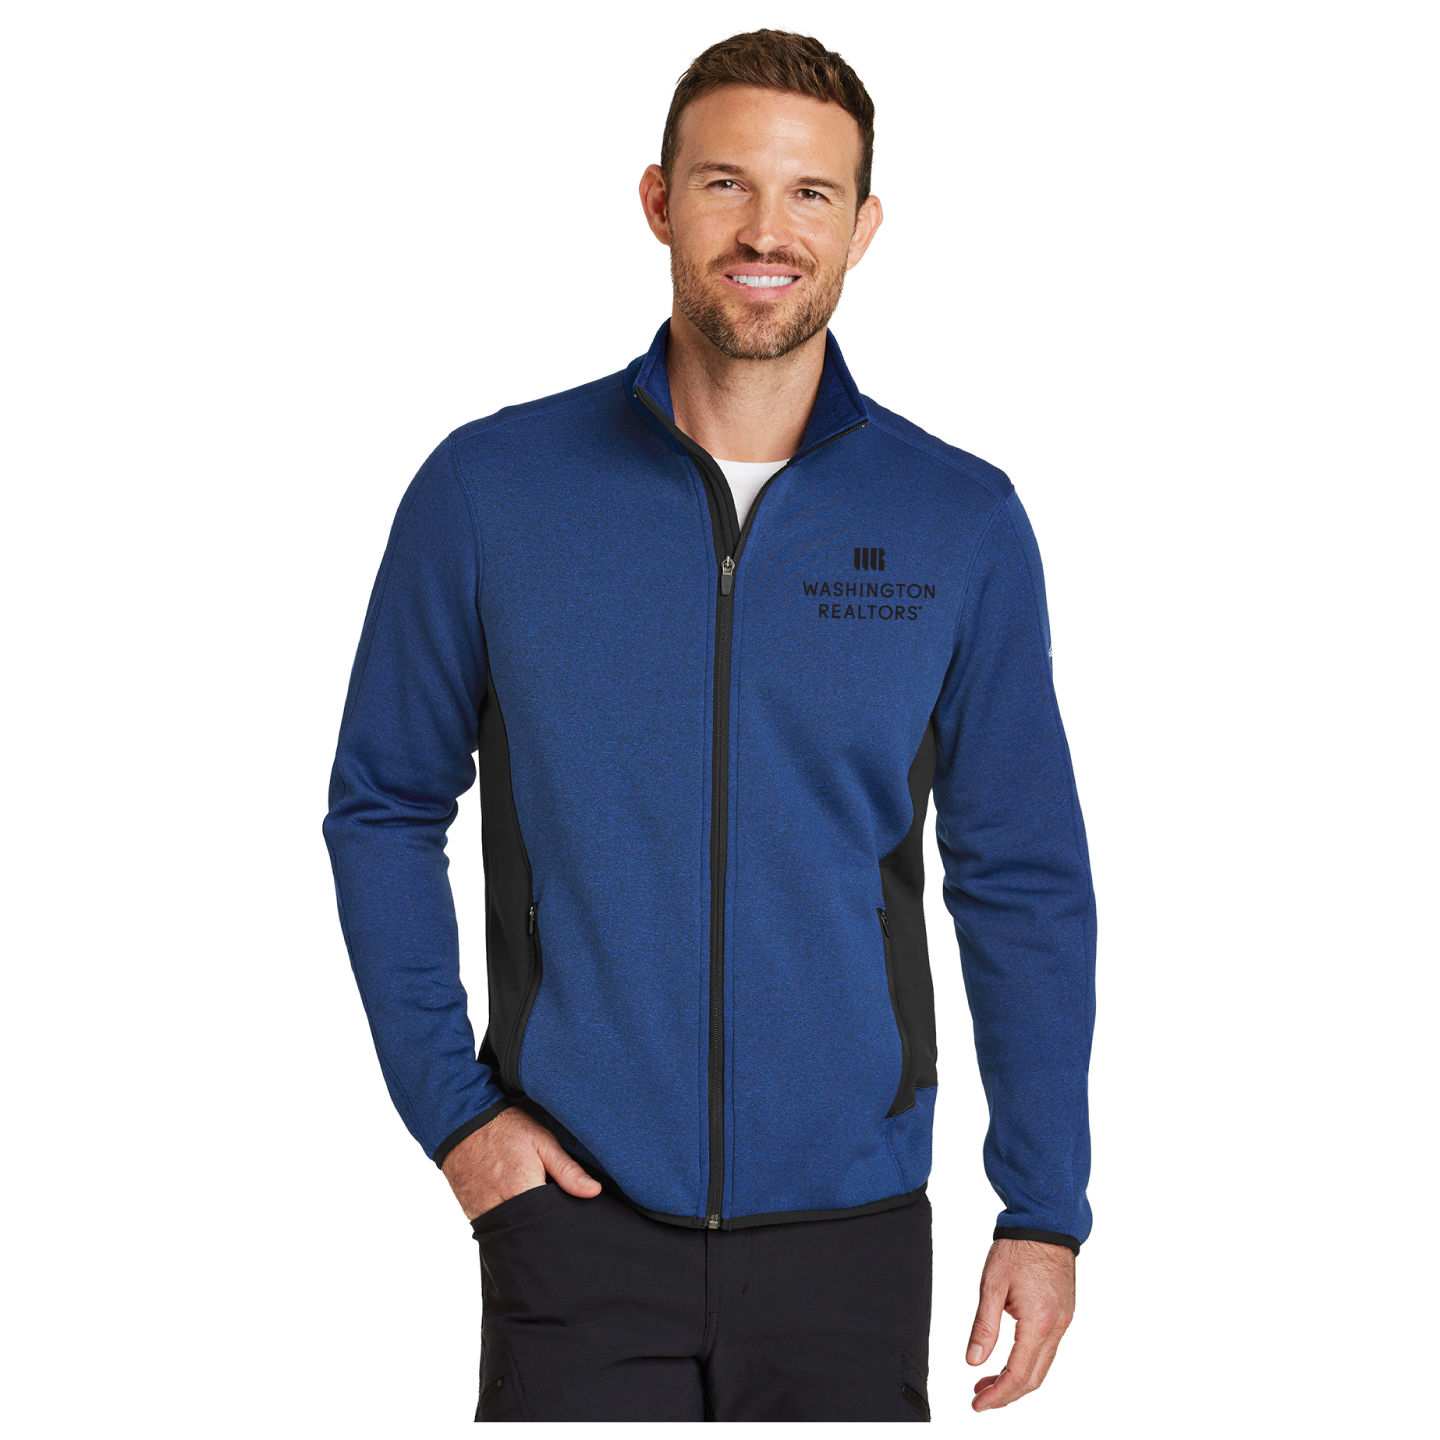 Washington REALTORS® Mens Eddie Bauer Fleece Jacket